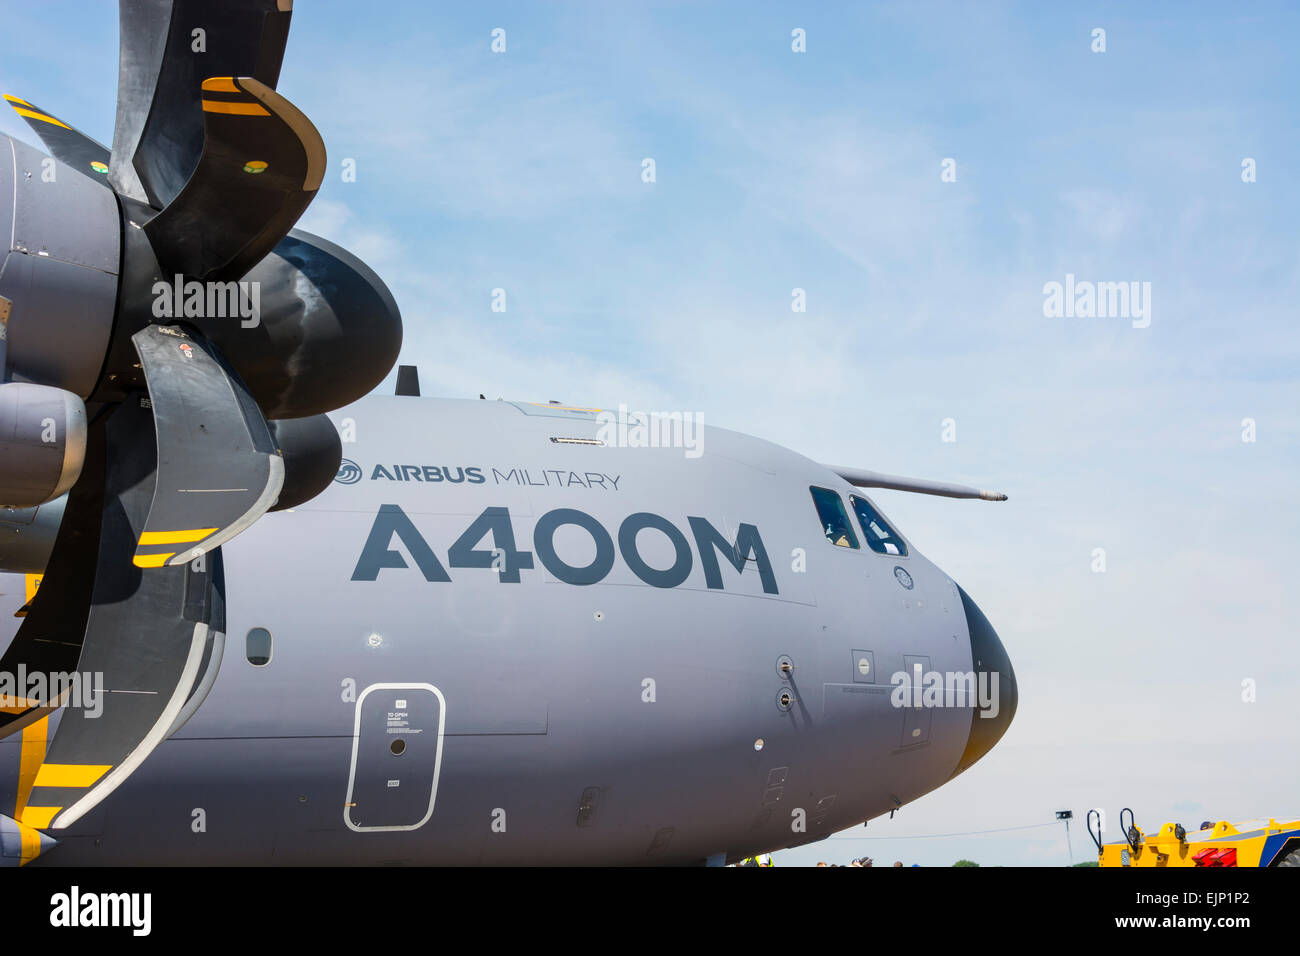 Airbus A400M Atlas aircraft - Stock Image